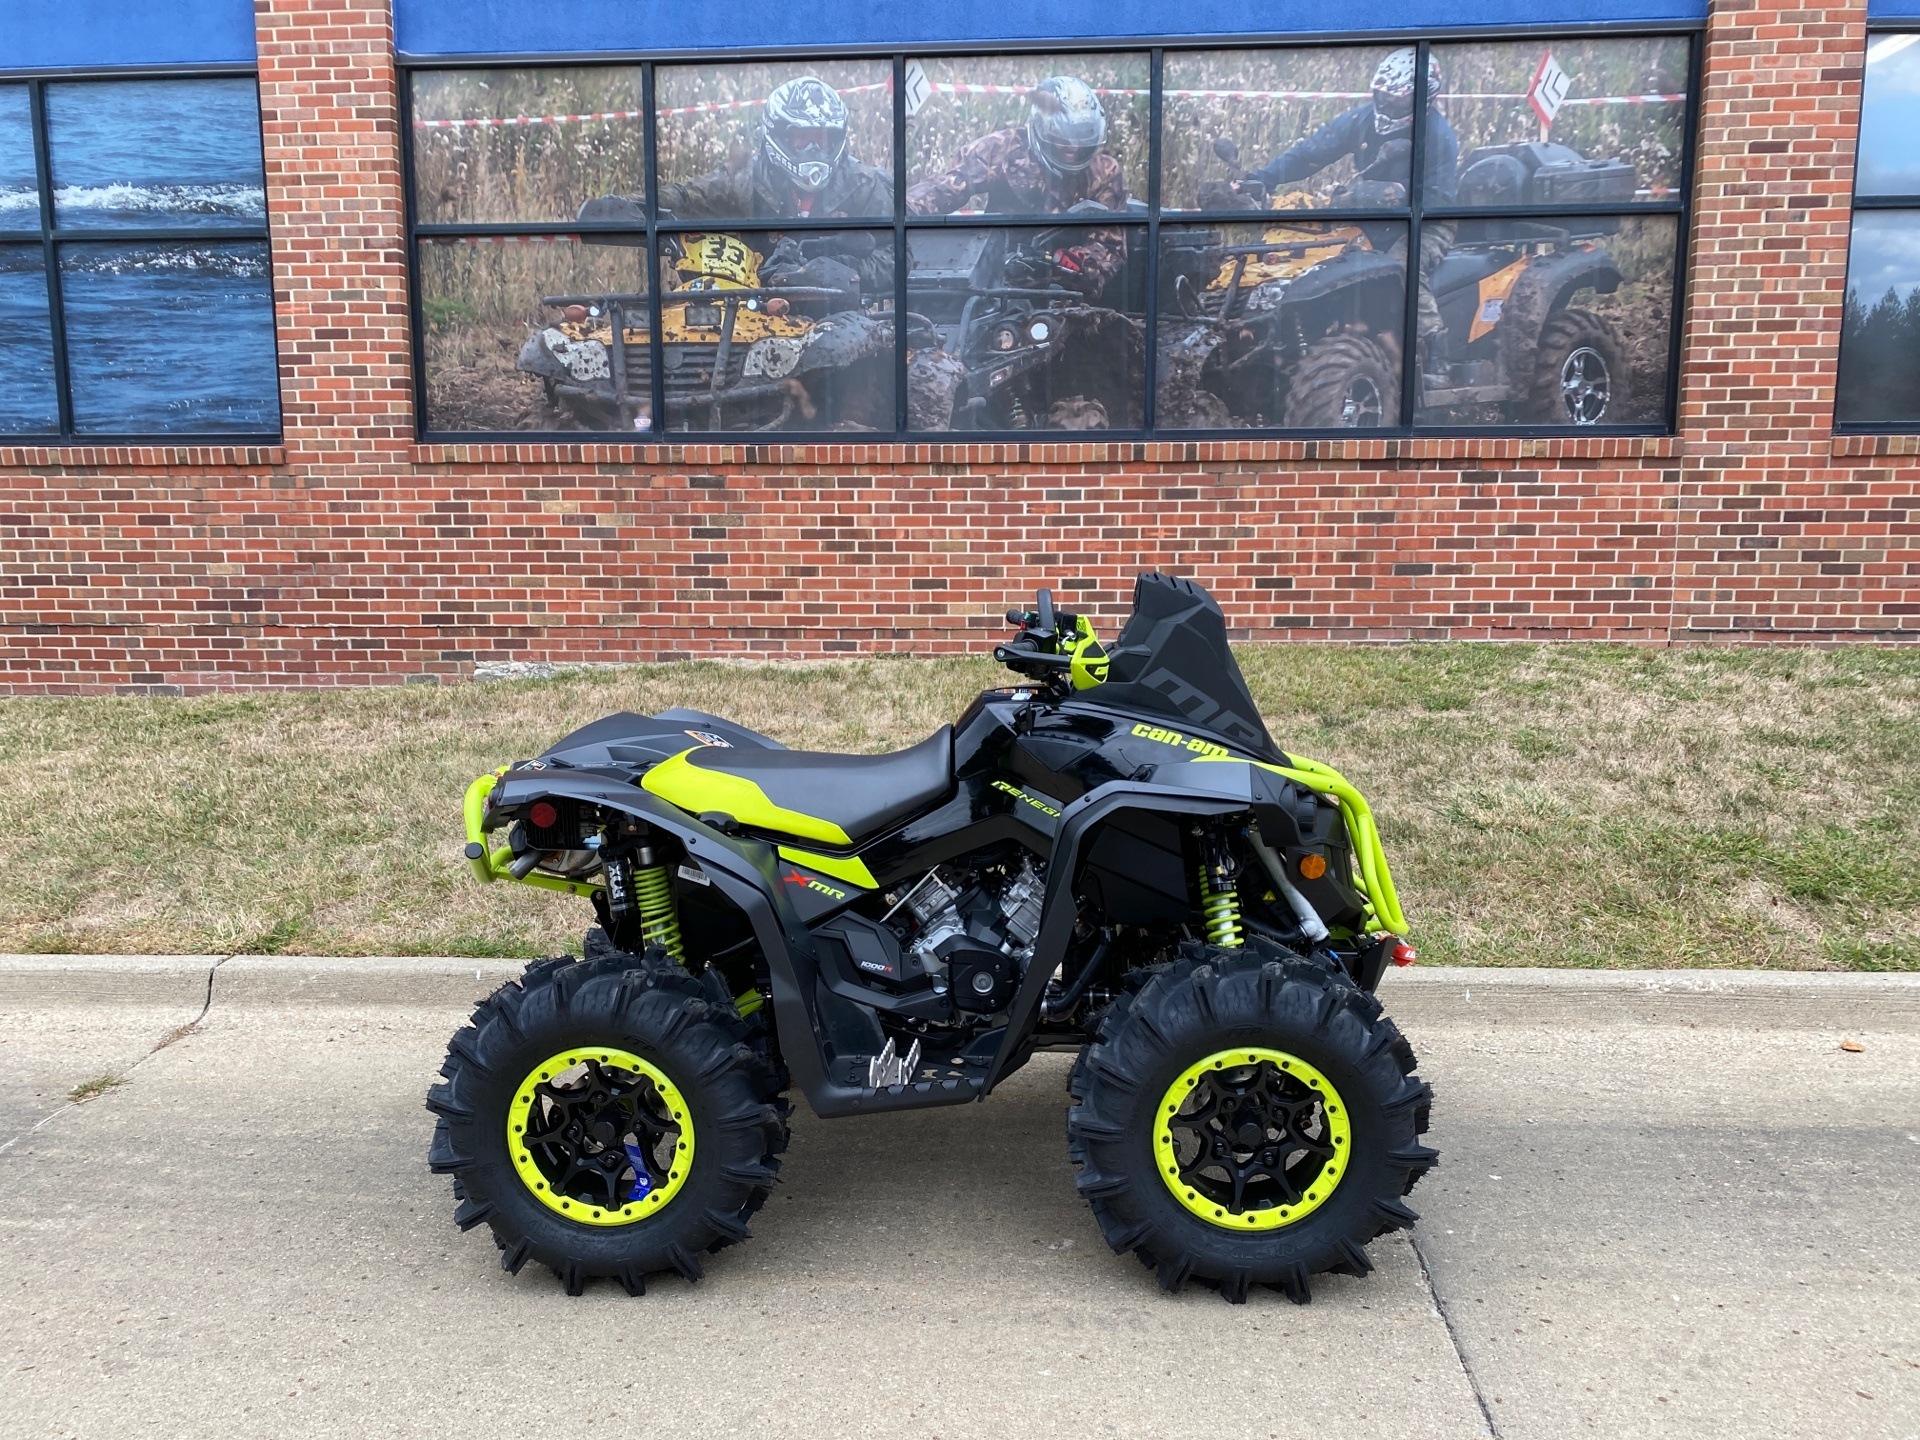 2021 Can-Am Renegade X MR 1000R in Grimes, Iowa - Photo 1